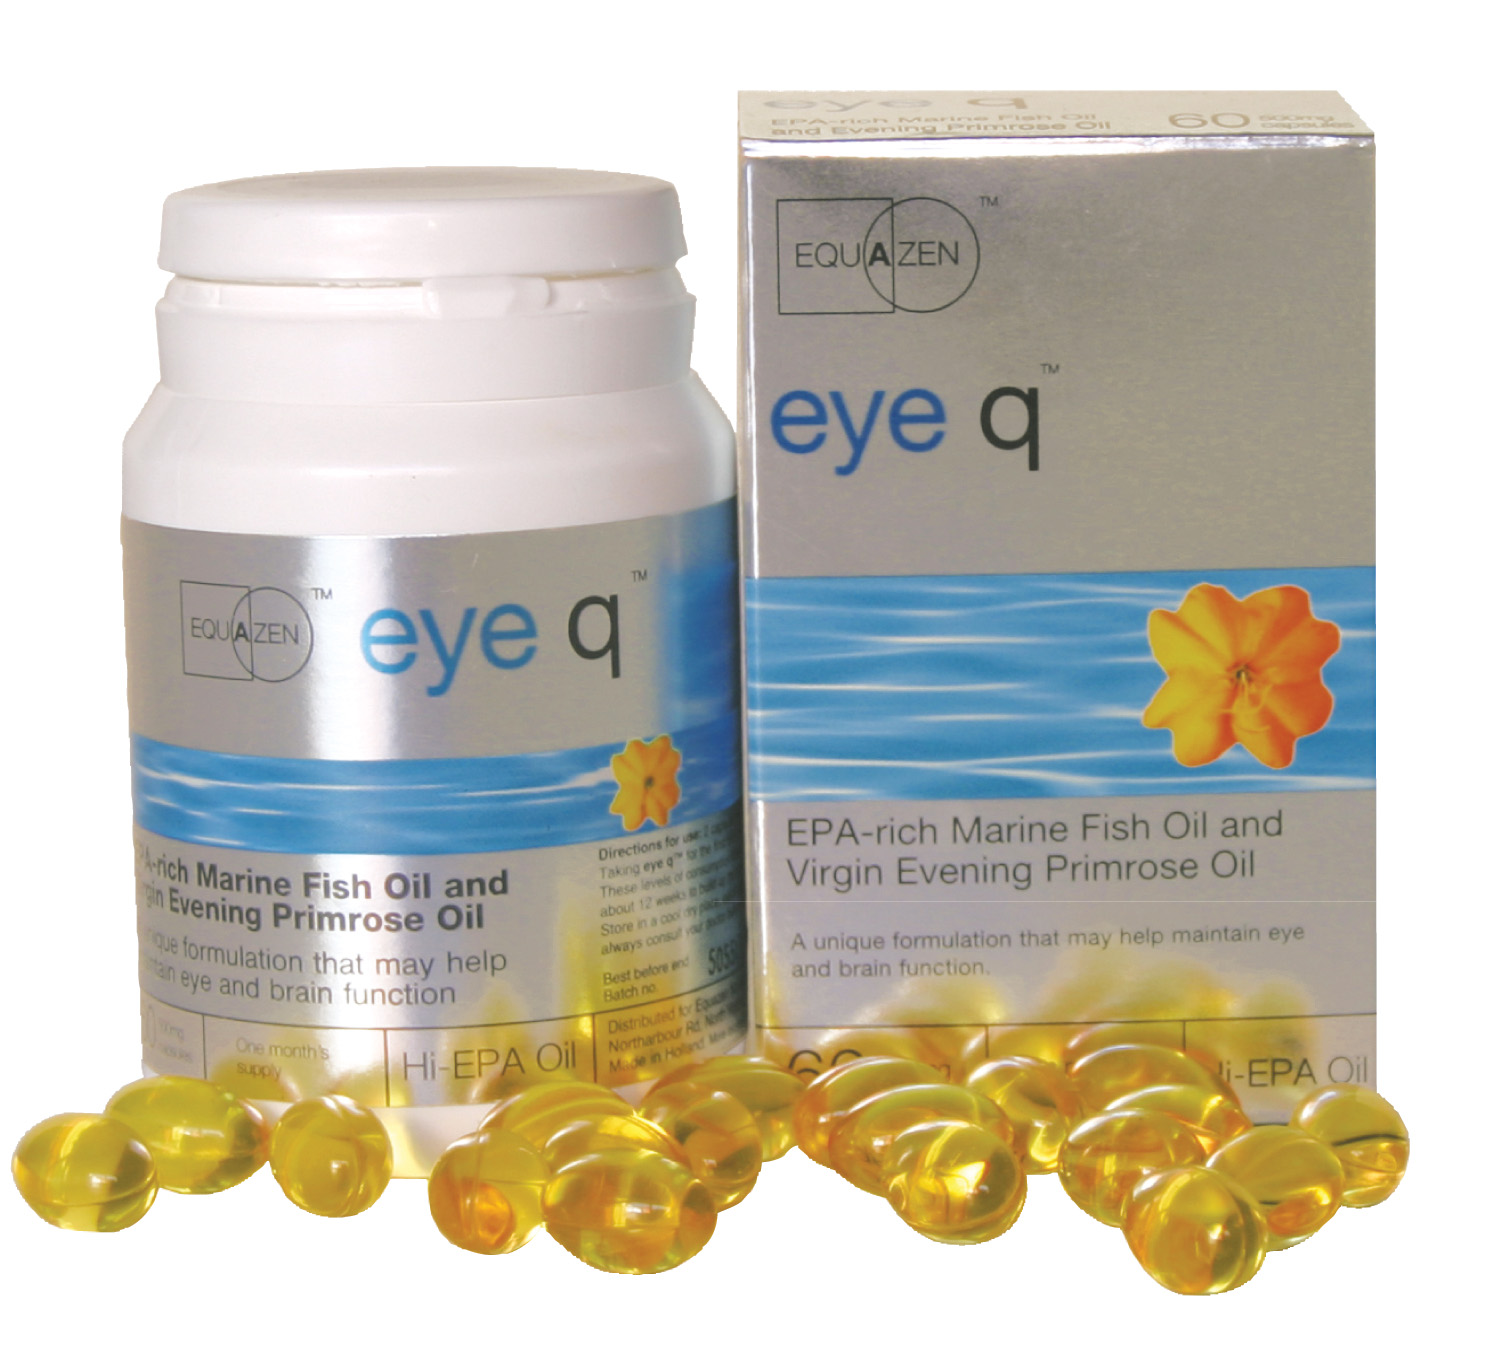 Freebees PR & Marketing: eye-q - FISH OIL BOOSTS